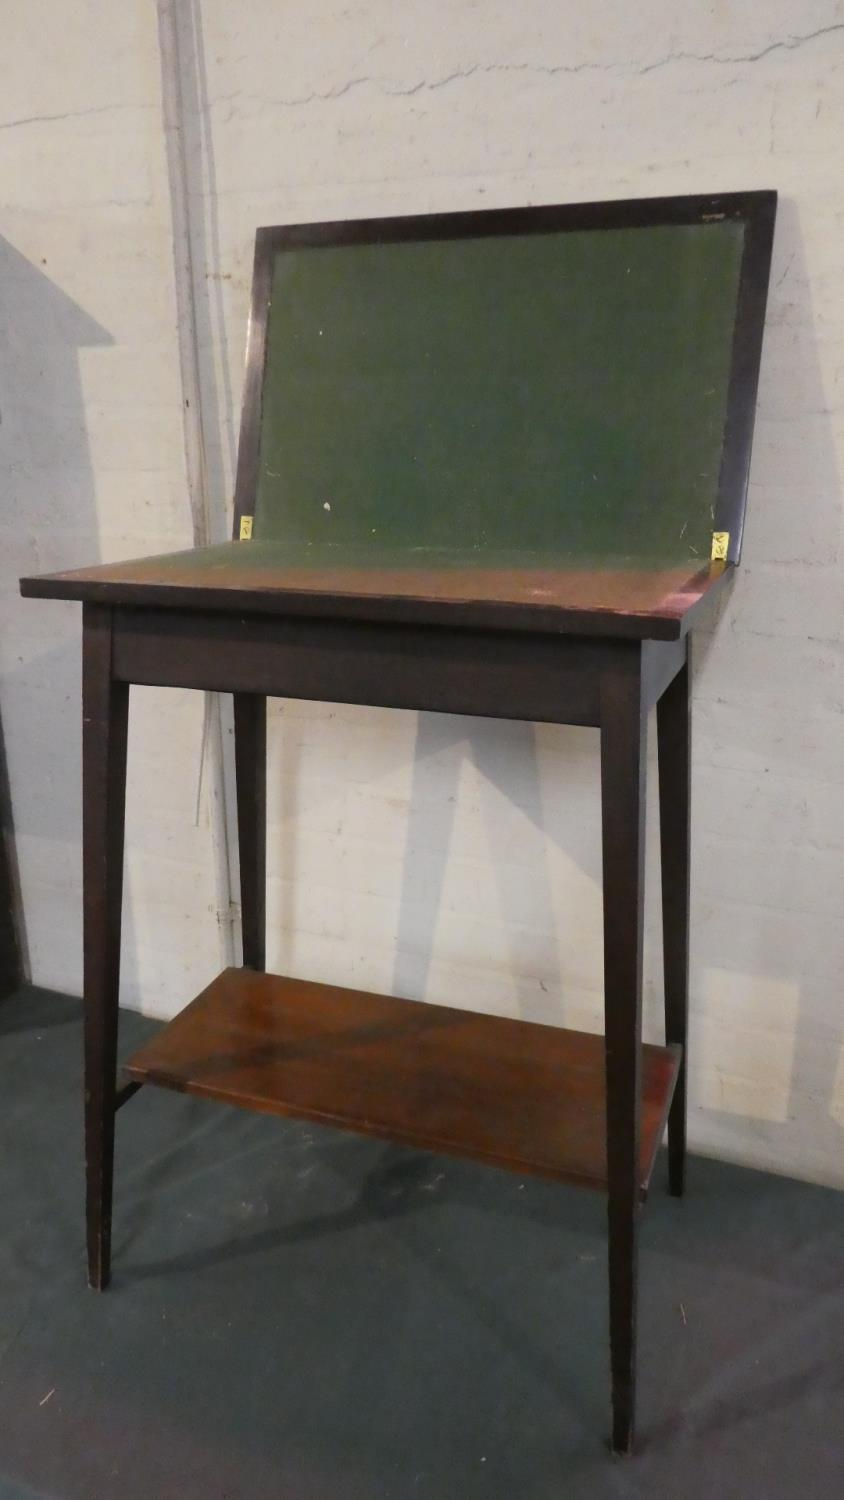 Lot 54 - An Edwardian Mahogany Lift and Twist Top Games Table with Beize Playing Surface and Stretcher Shelf,